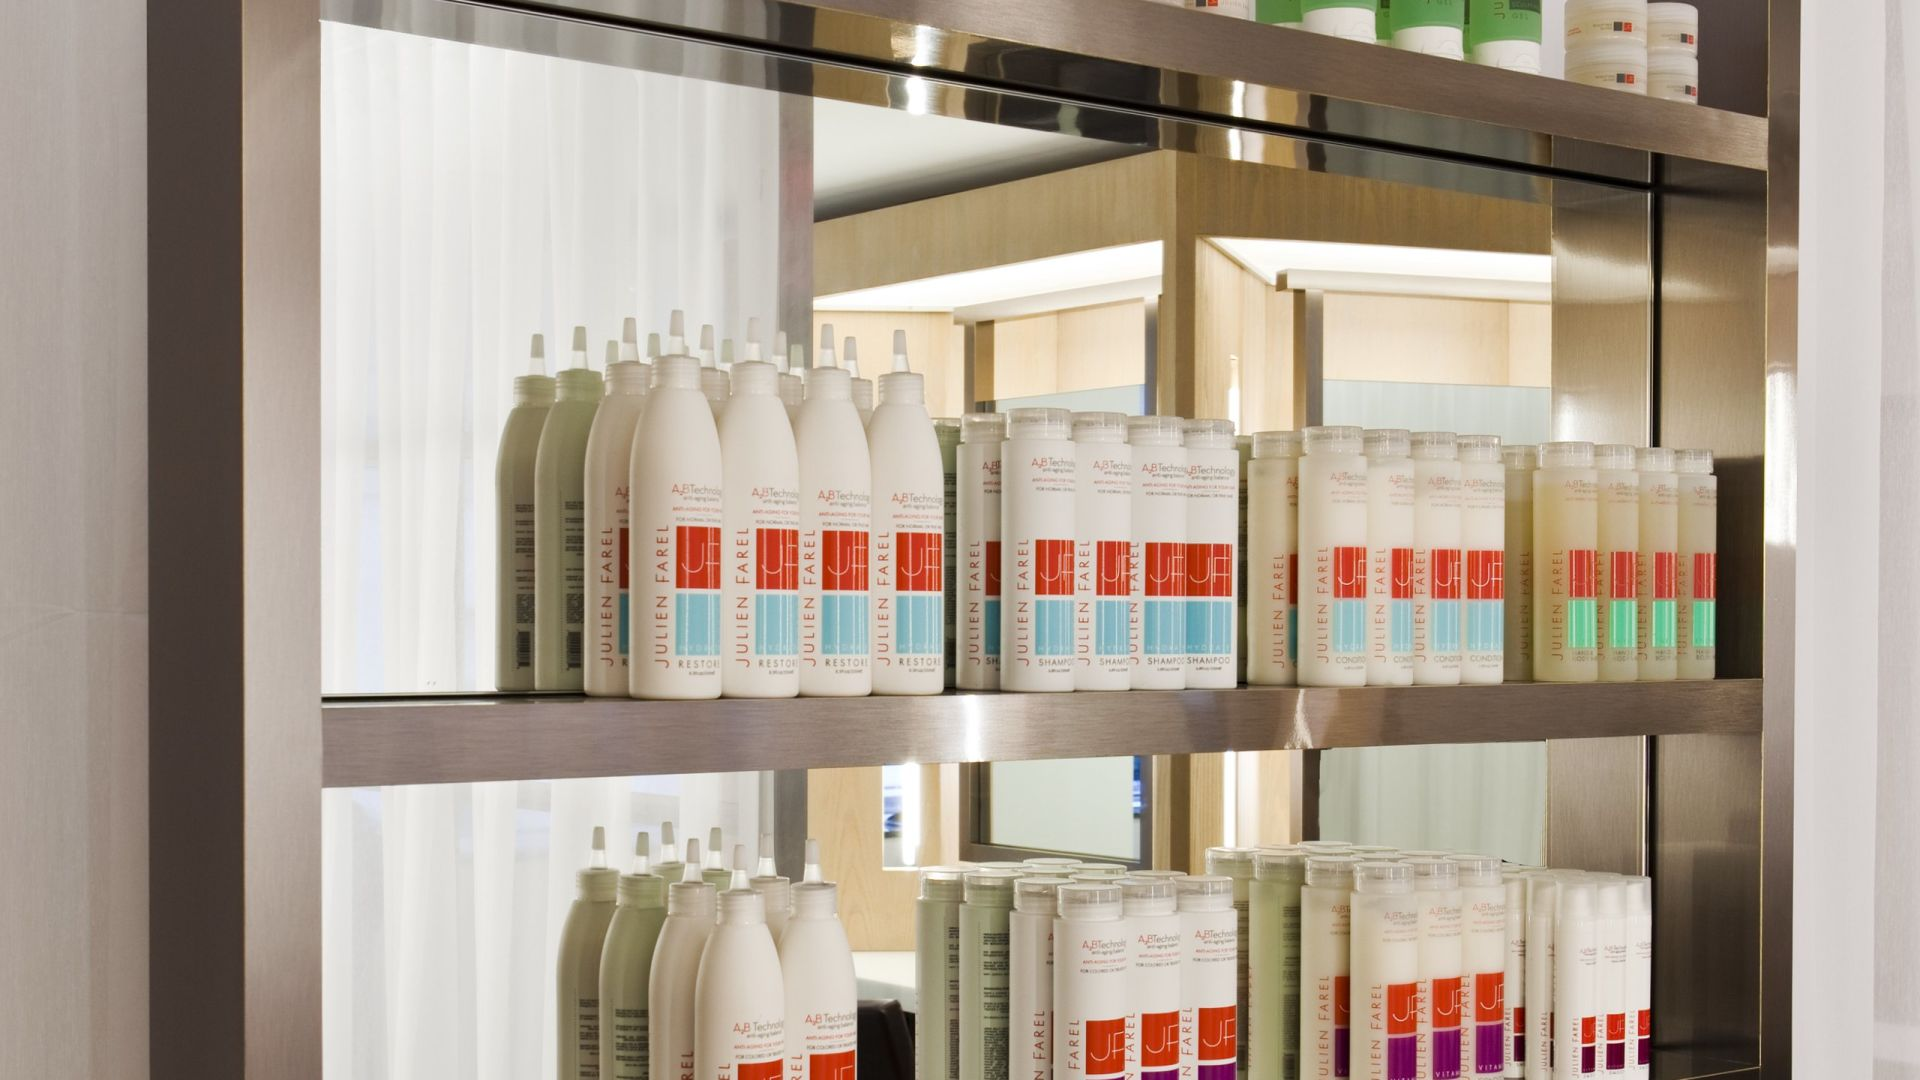 Produit JF | Julien Farel Restore Salon & Spa | Loews Regency New York Hotel